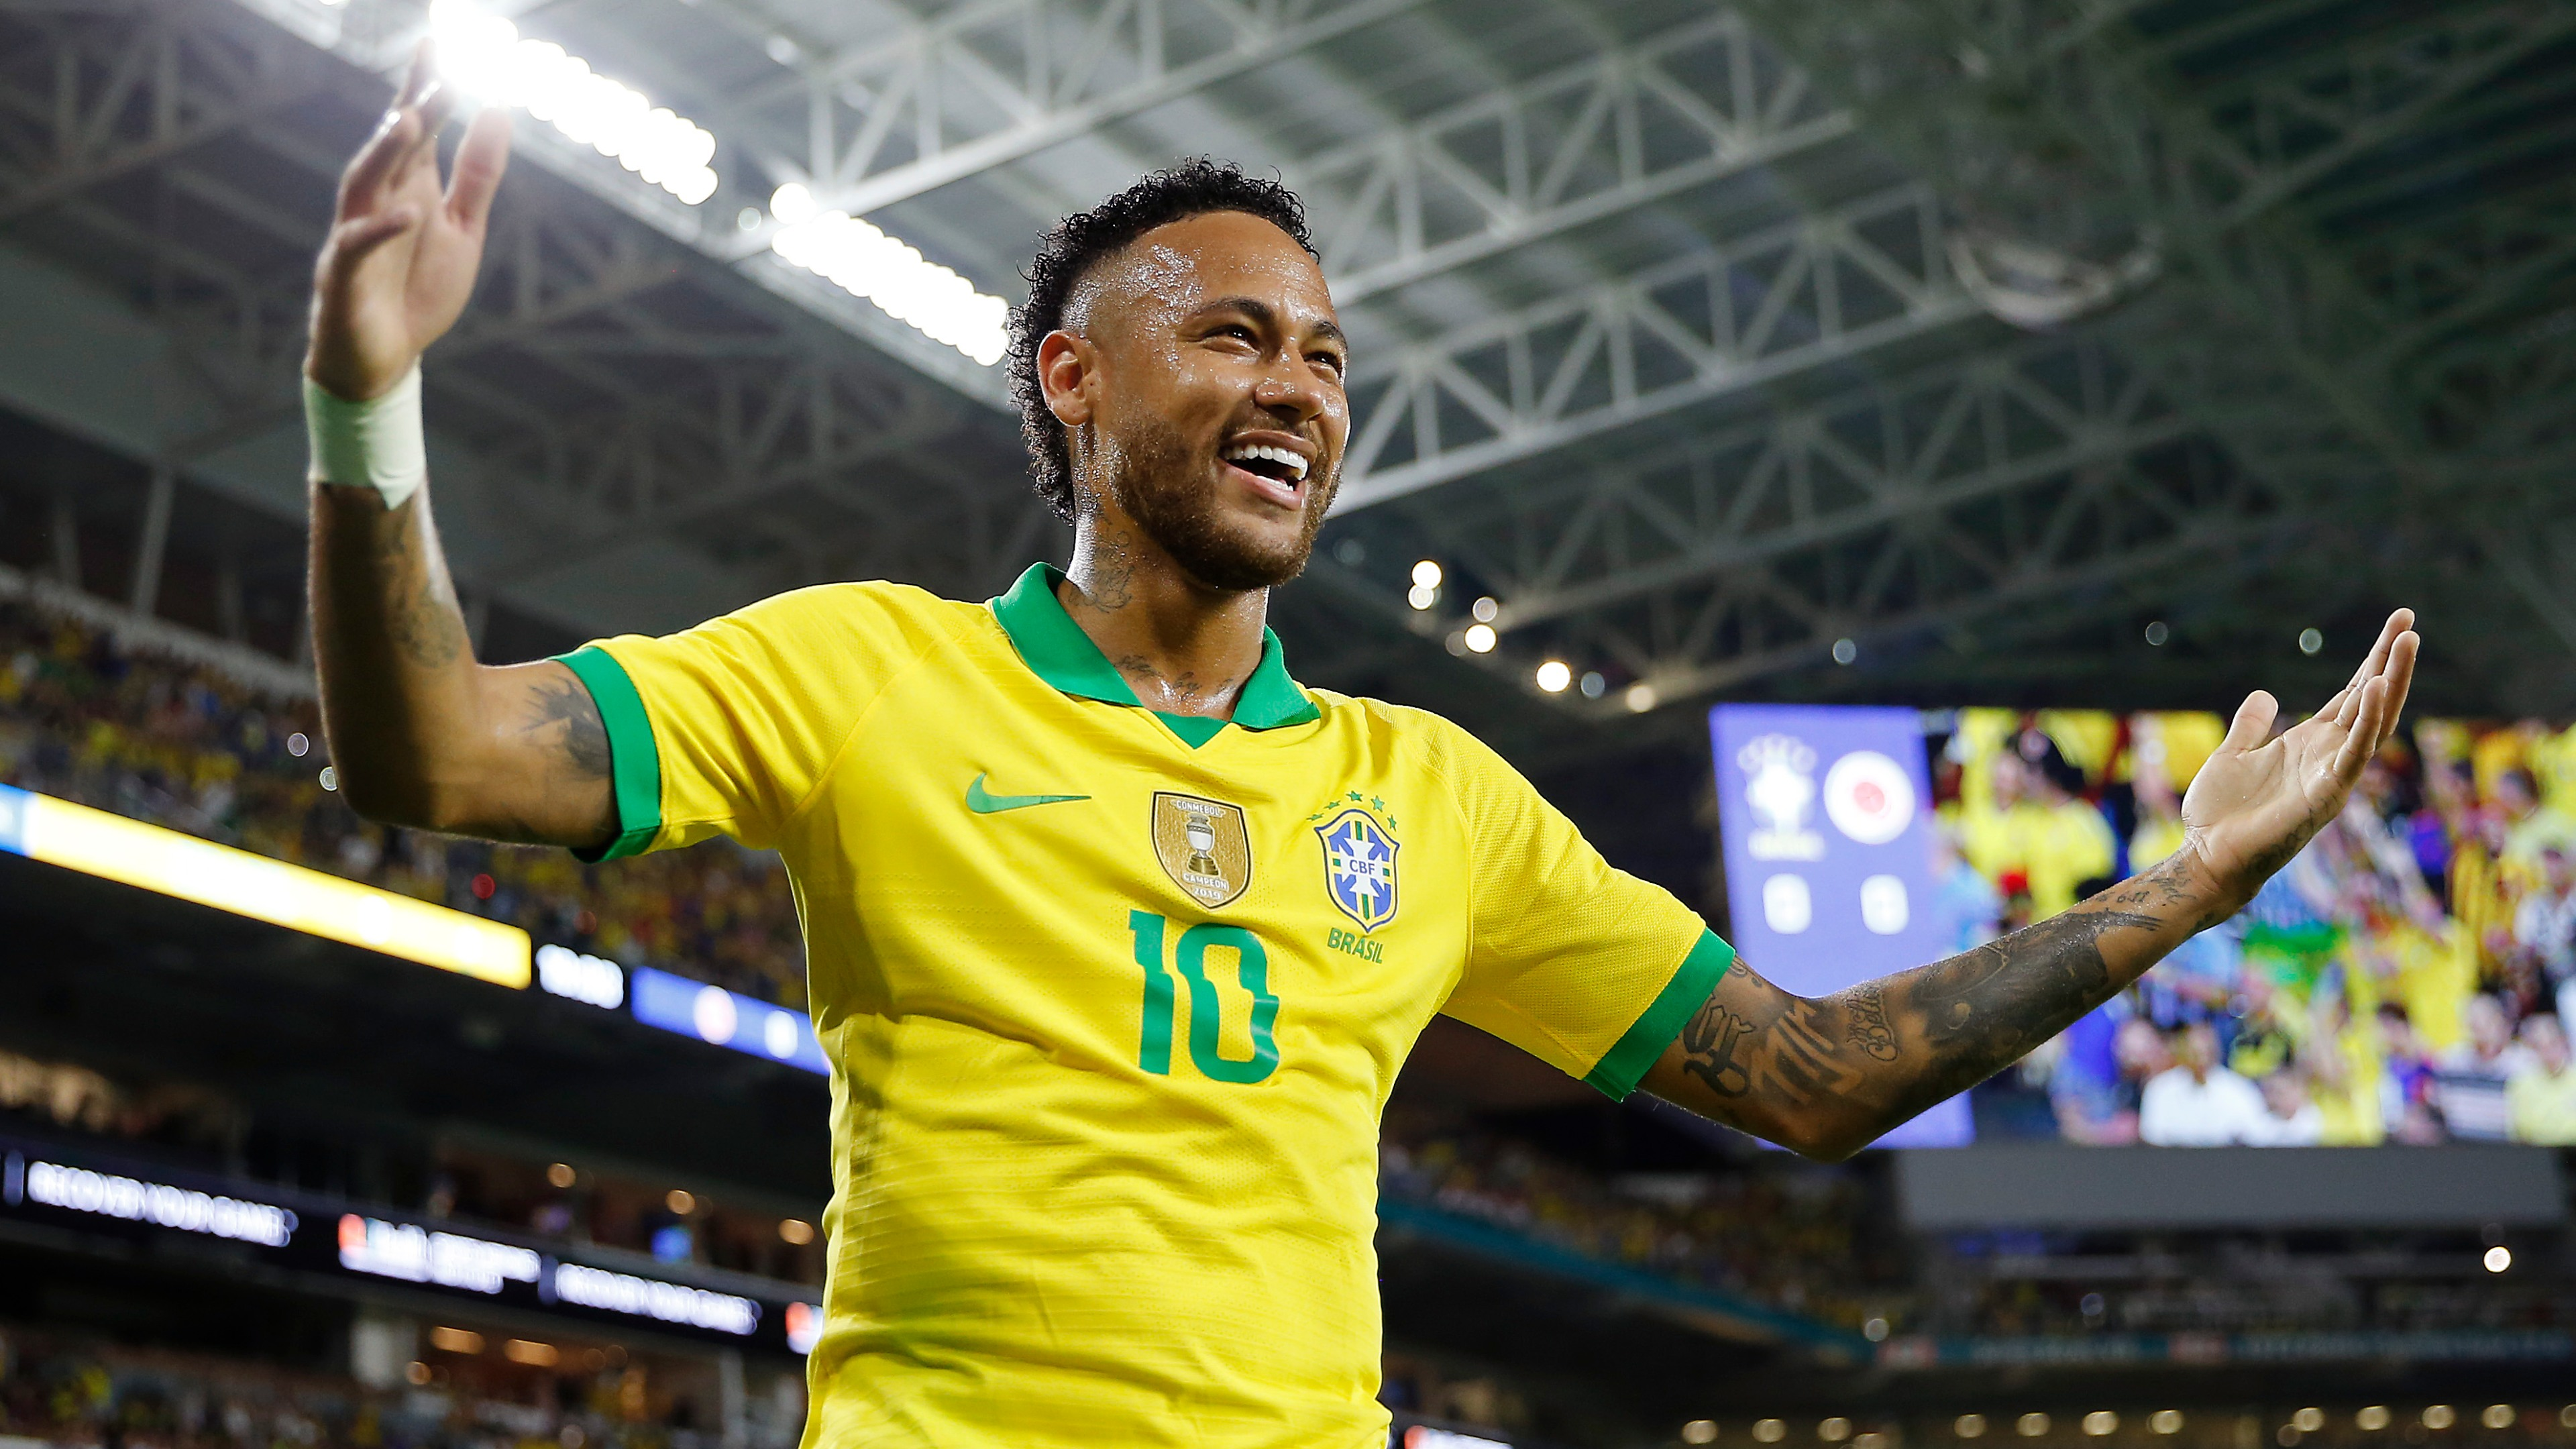 Neymar scores for Brazil in first match for three months | Goal.com